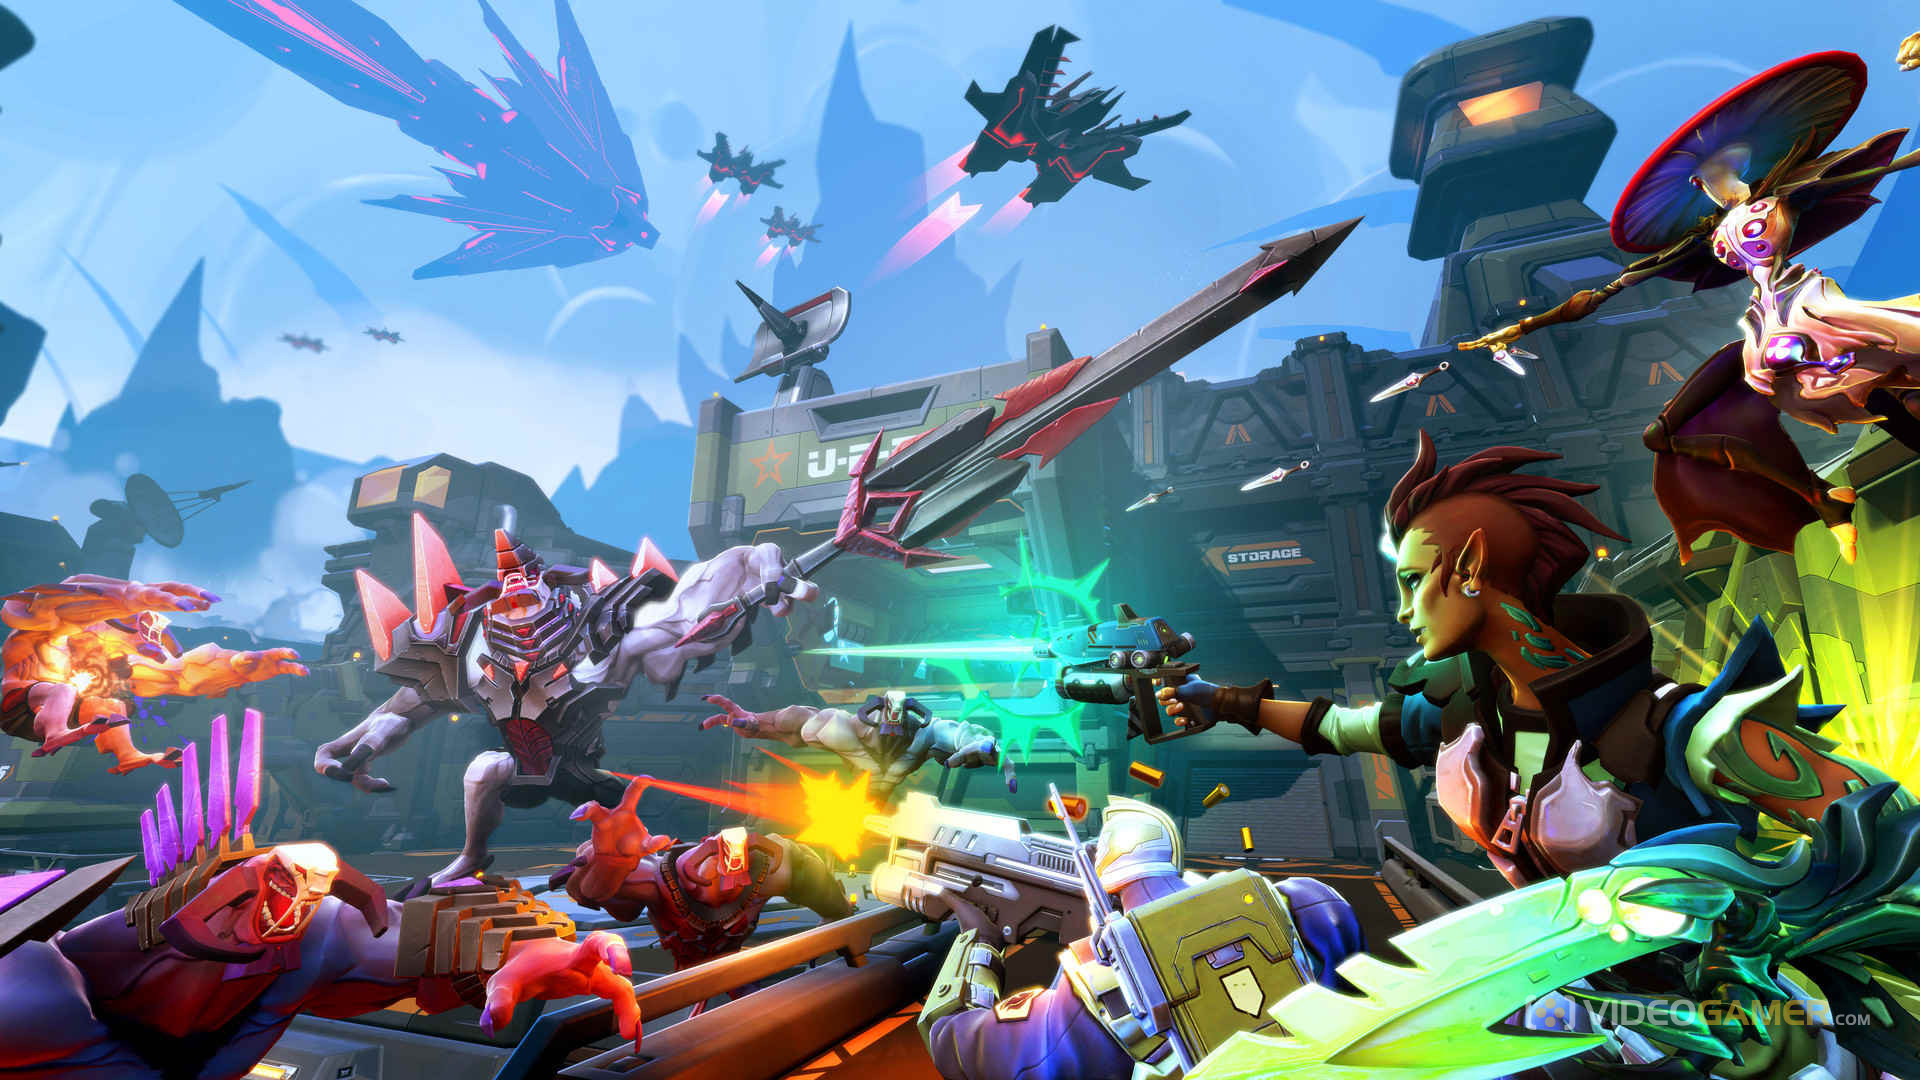 Battleborn Theme – From The Makers Of Borderlands